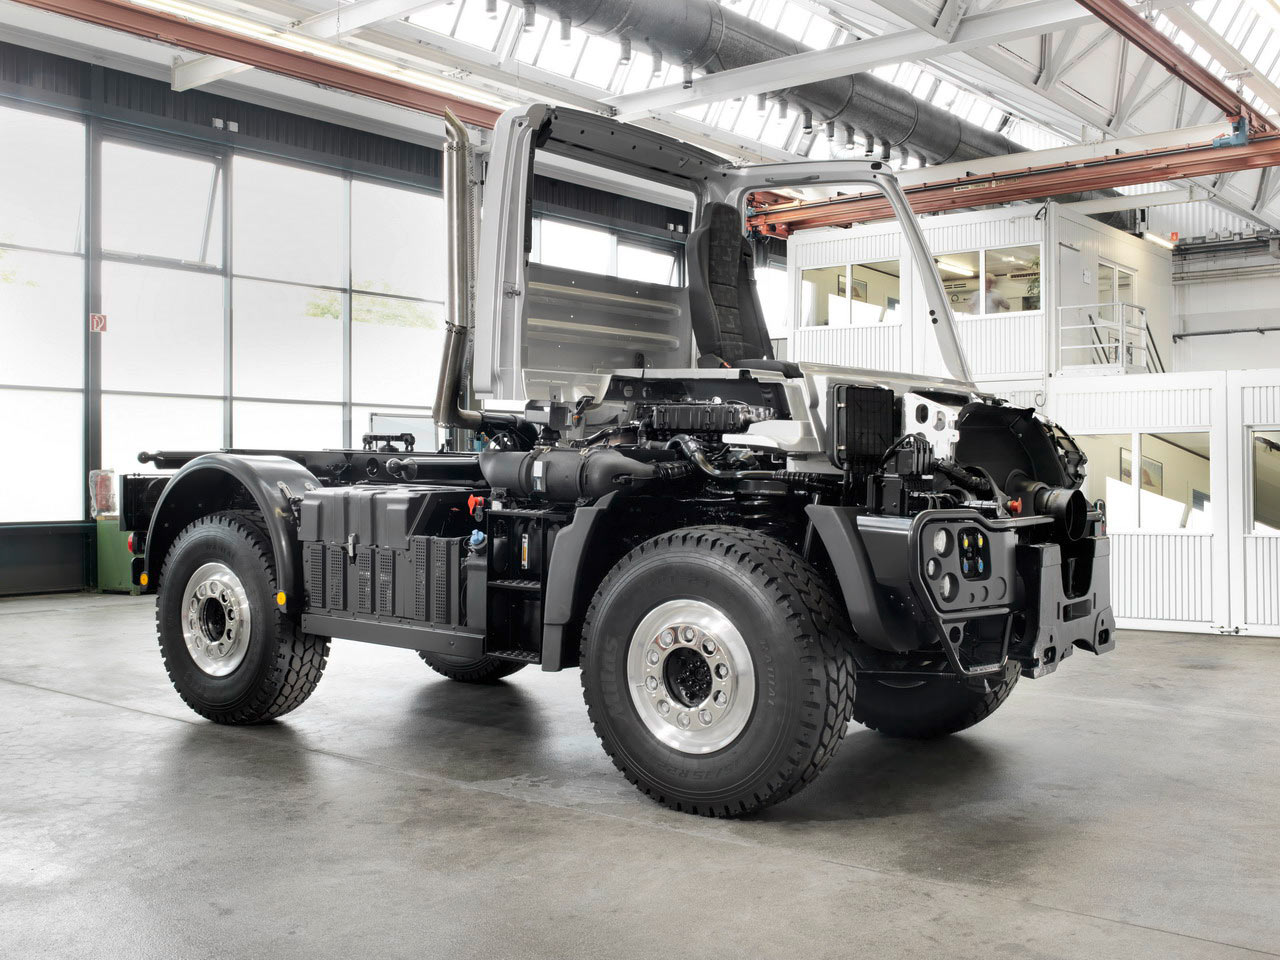 Unimog expedition for sale in autos weblog for Mercedes benz trucks for sale in usa